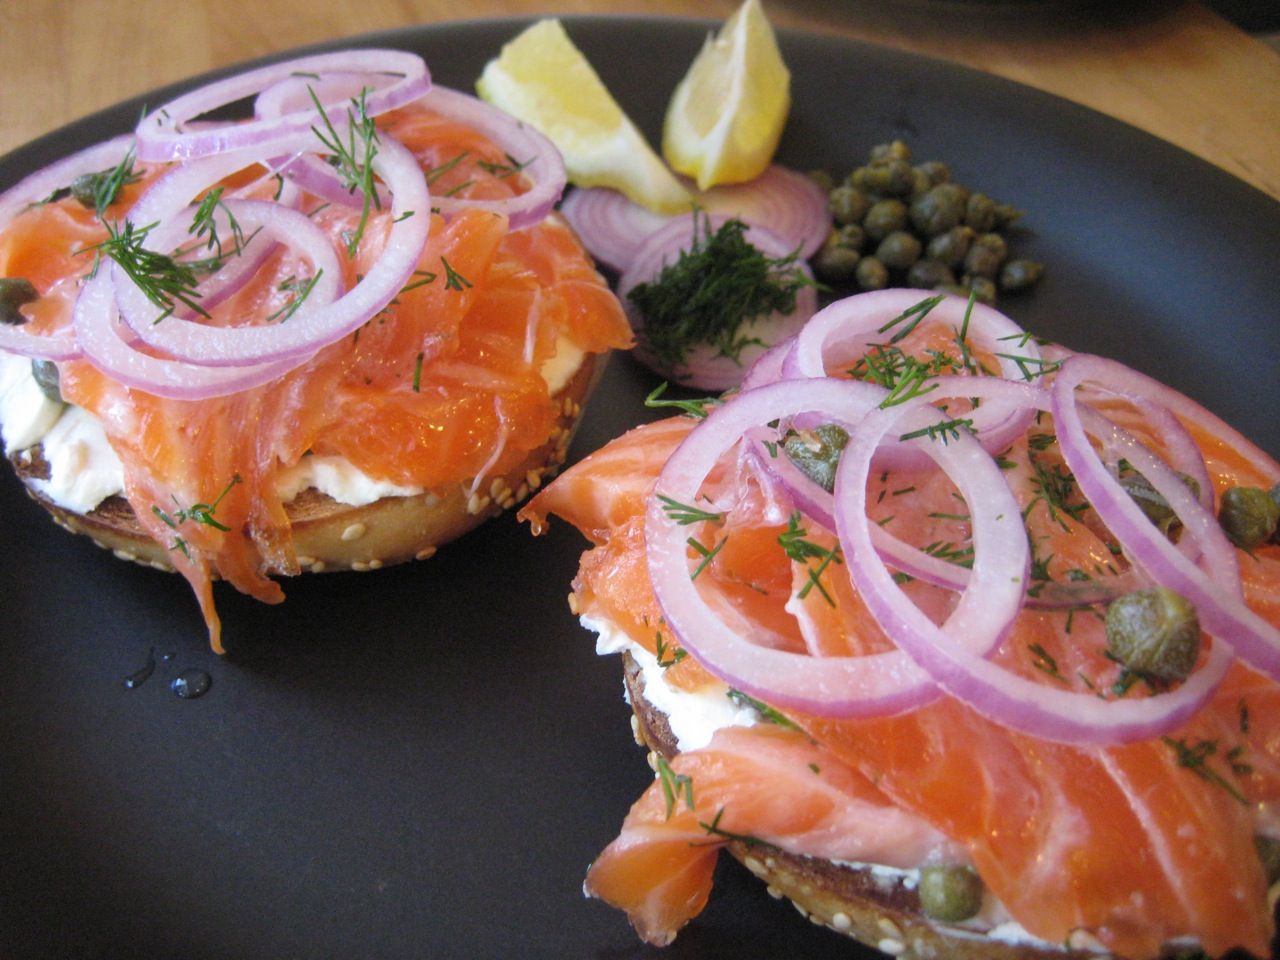 Homemade Lox at 1/4 the Cost